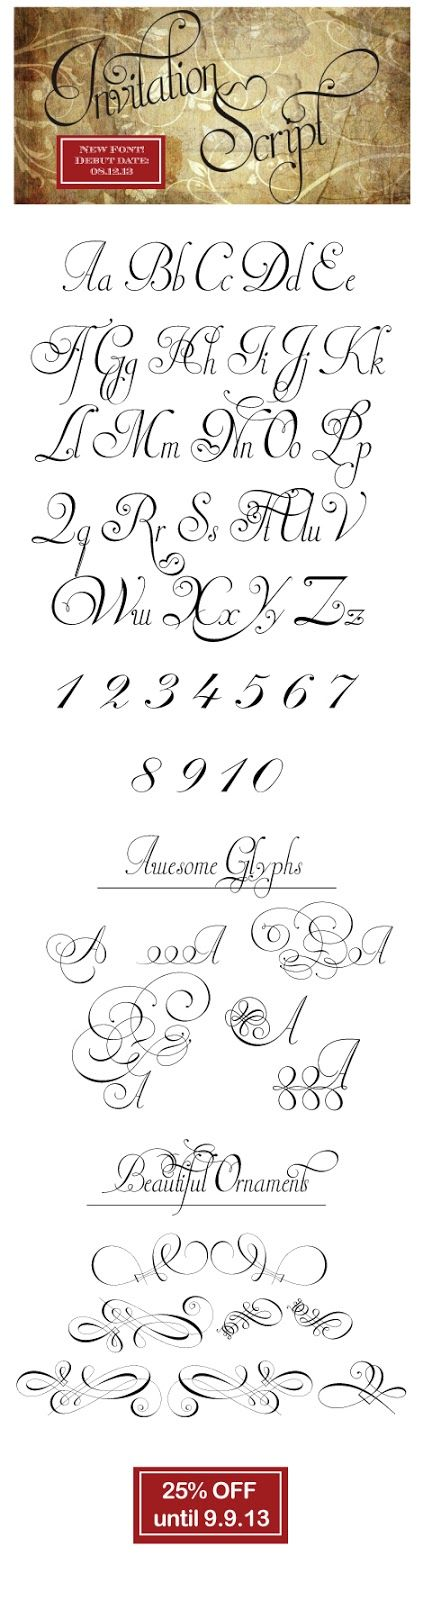 New font debuted on 081213! #Invitation Script #Fonts - Letras Para Tatuajes